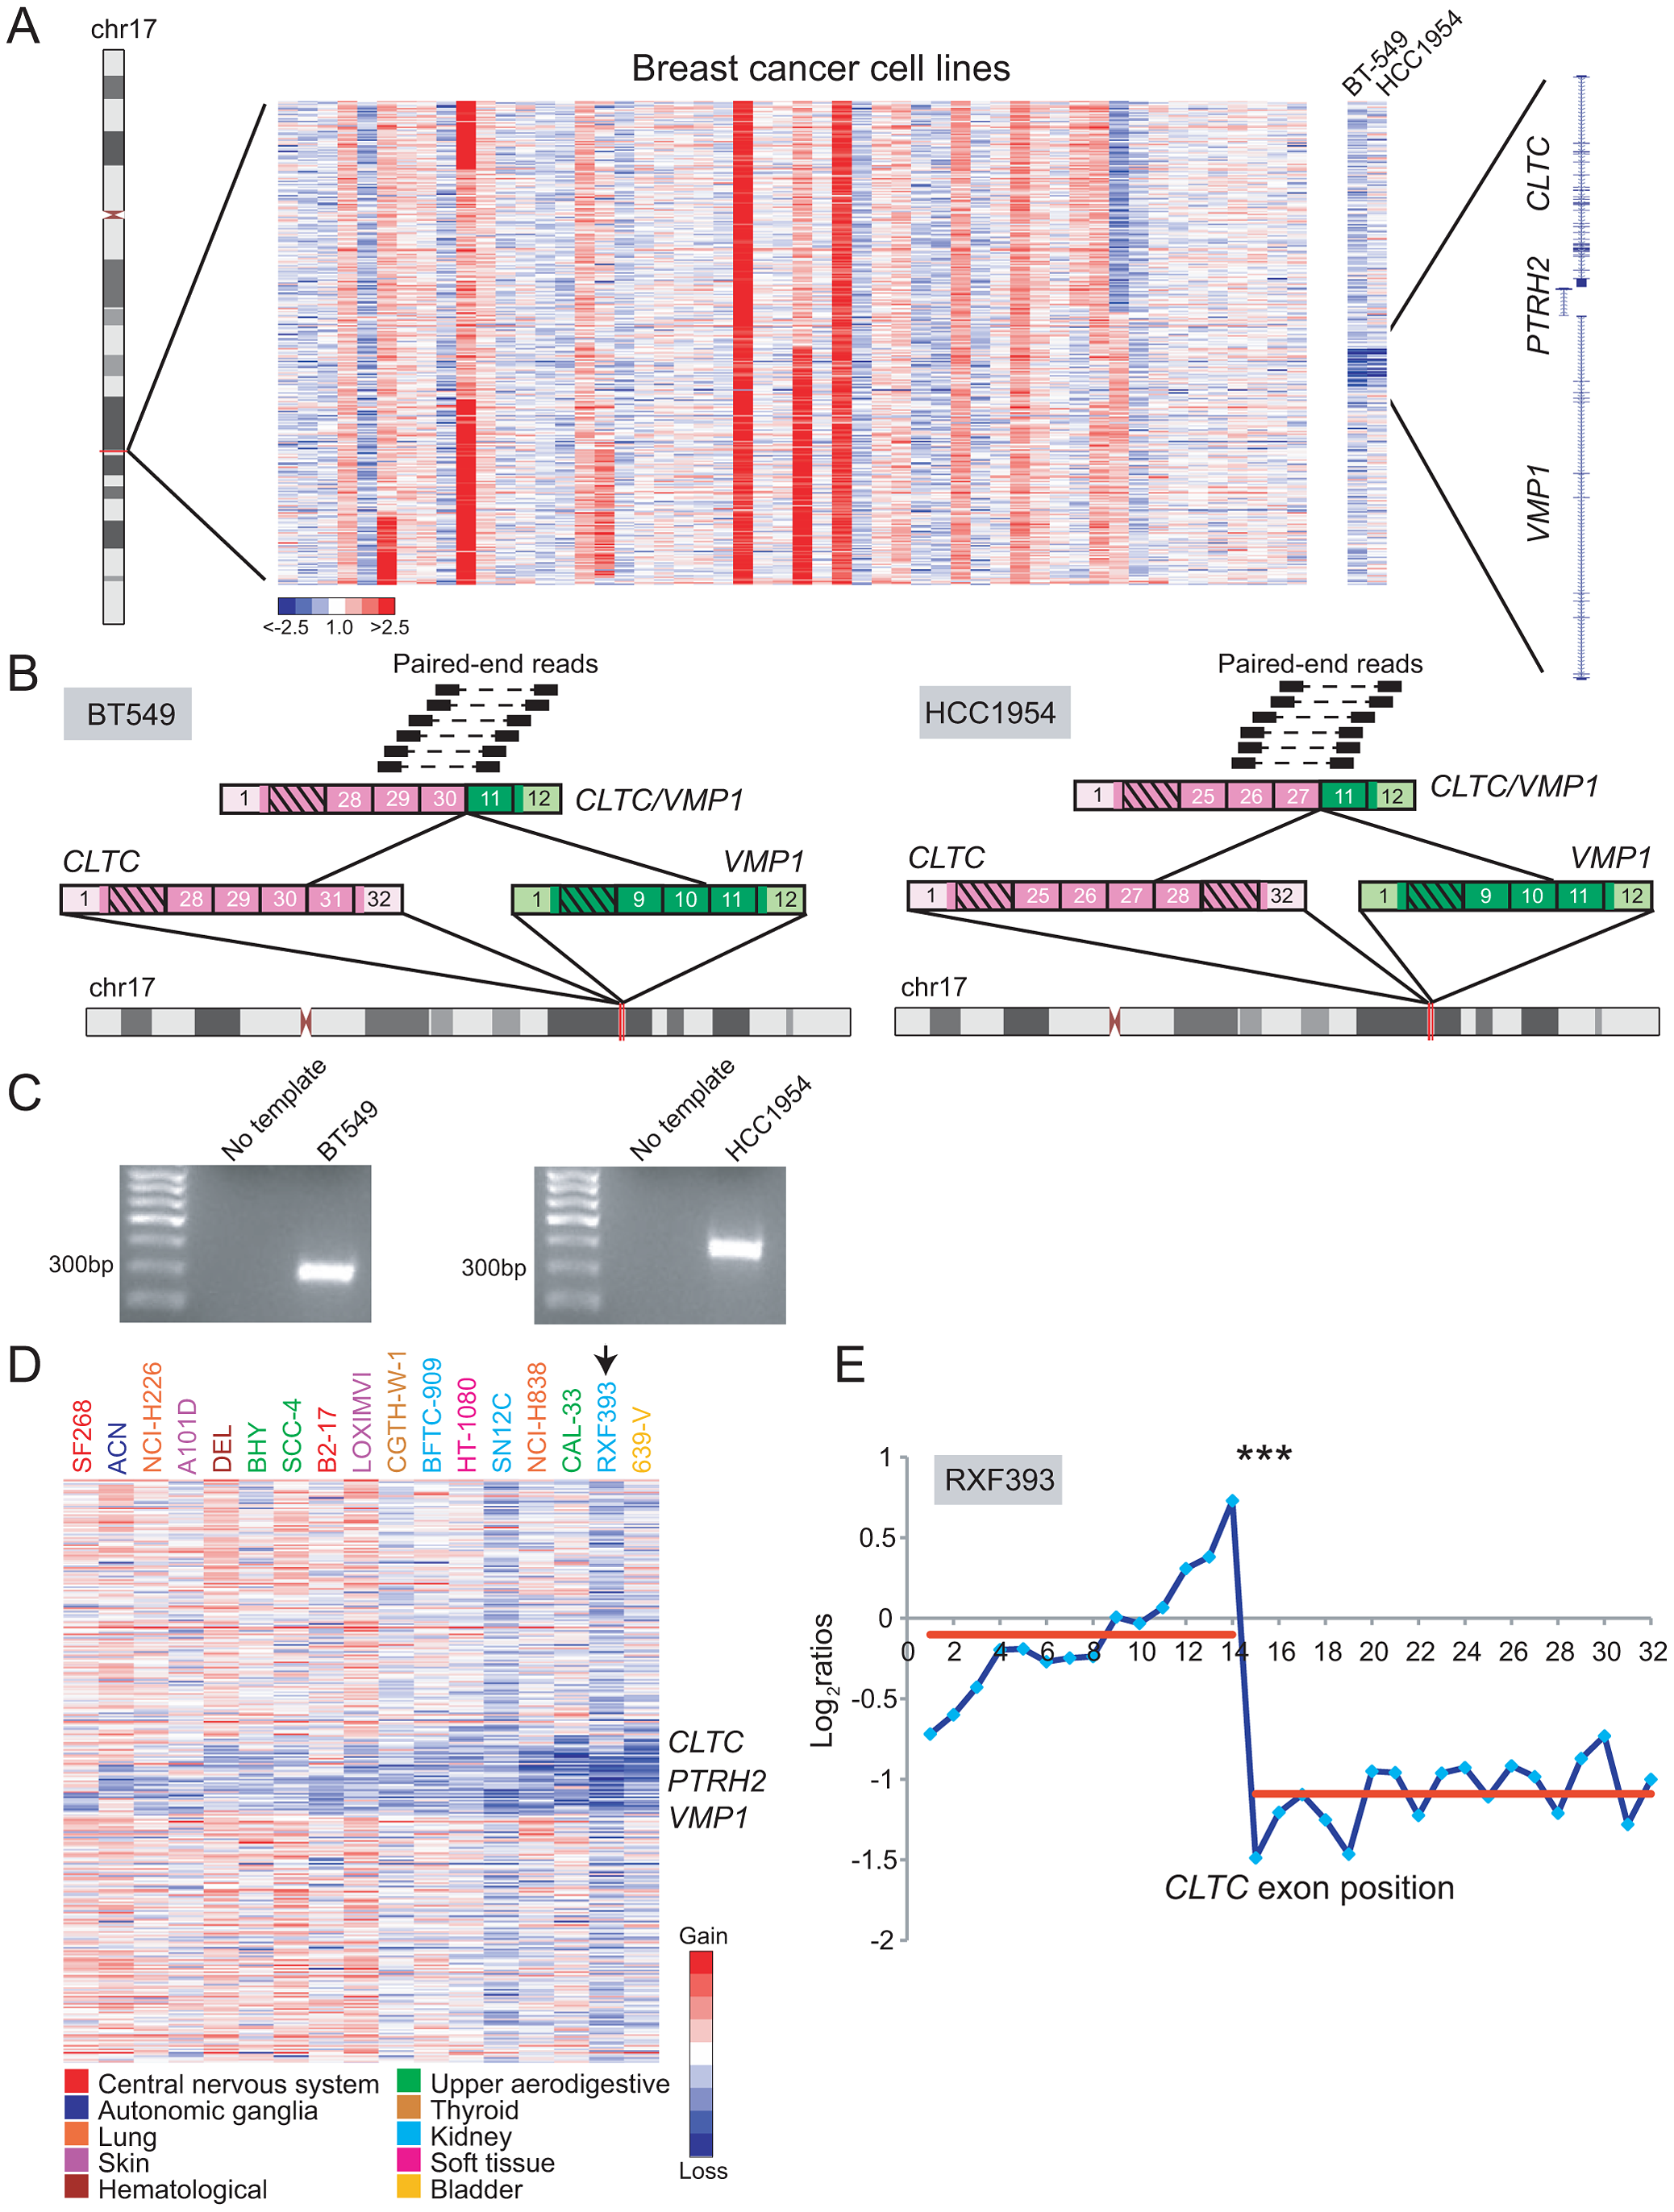 DBA discovery of recurrent rearrangements of <i>CLTC</i> and <i>VMP1</i> across diverse cancer types.